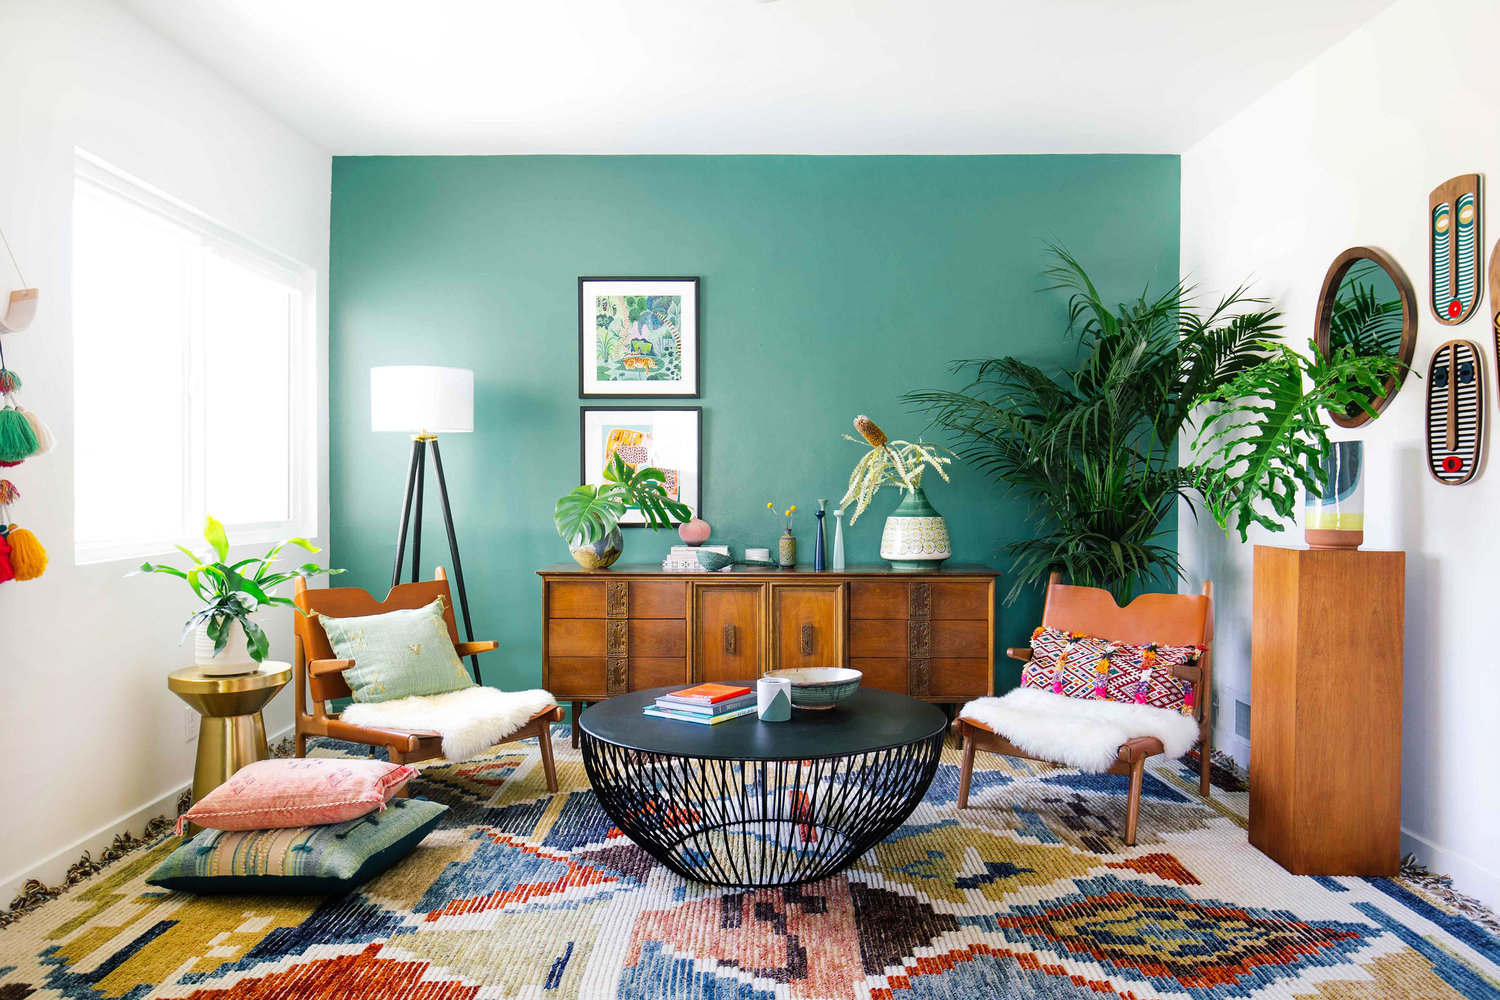 Living room ideas - Green Accent Wall